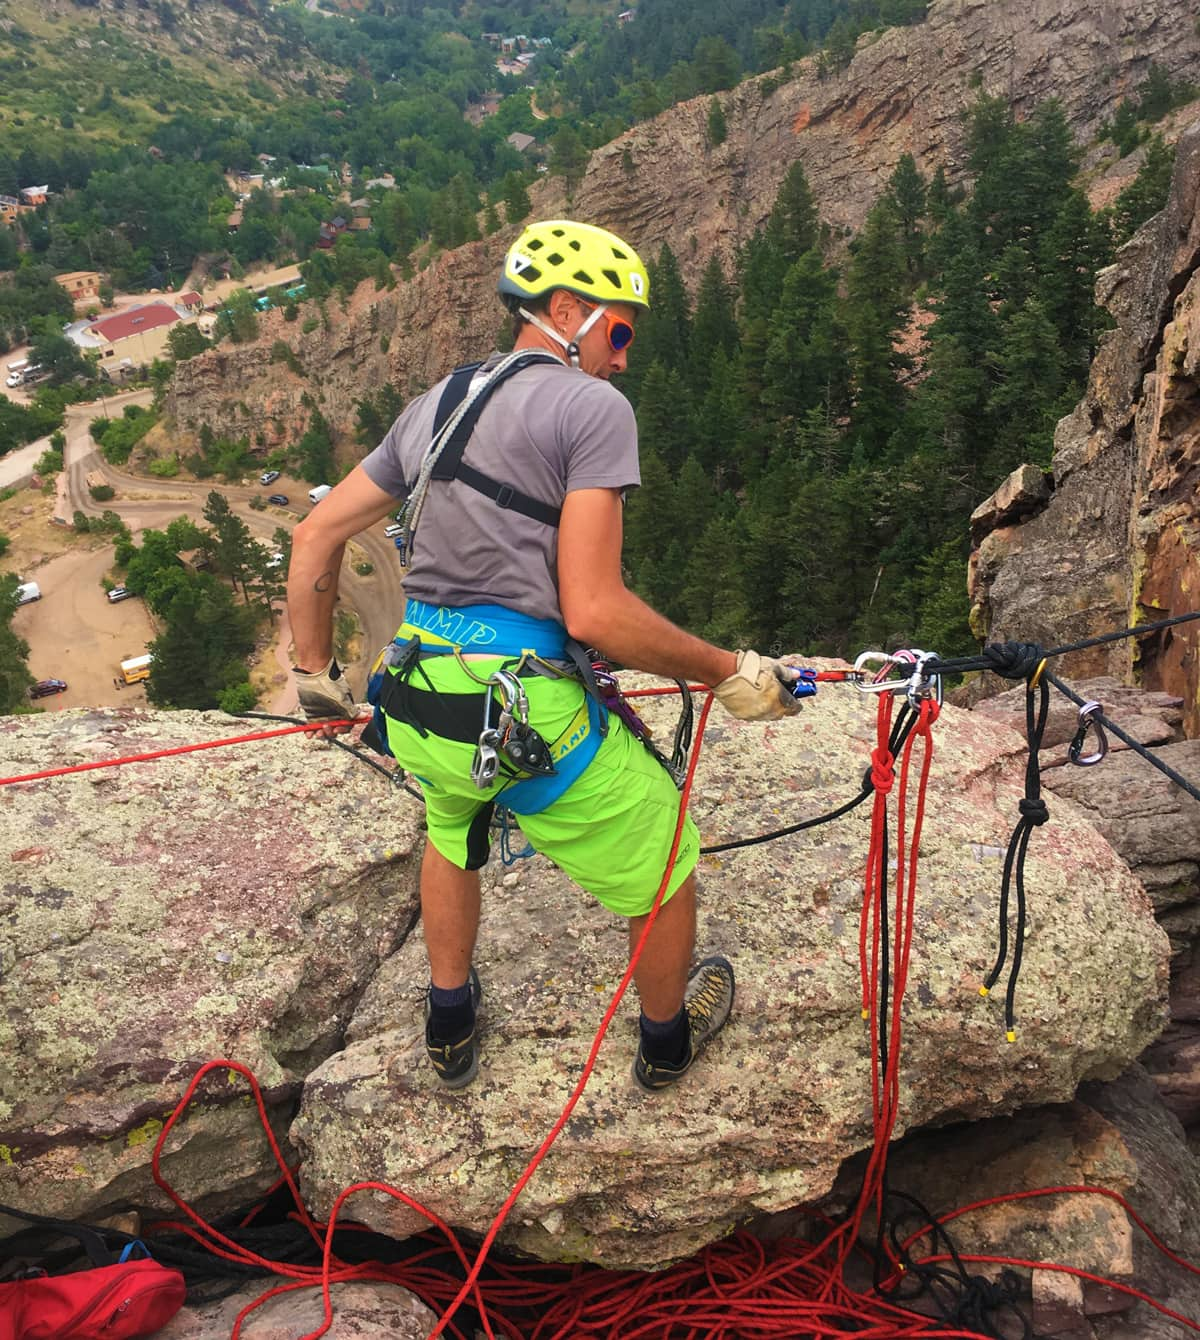 Internationally Certified Mountain Guide, Mike Lewis, rigging a technical rope system for a video production company in Eldorado Canyon - just outside of Denver, Colorado